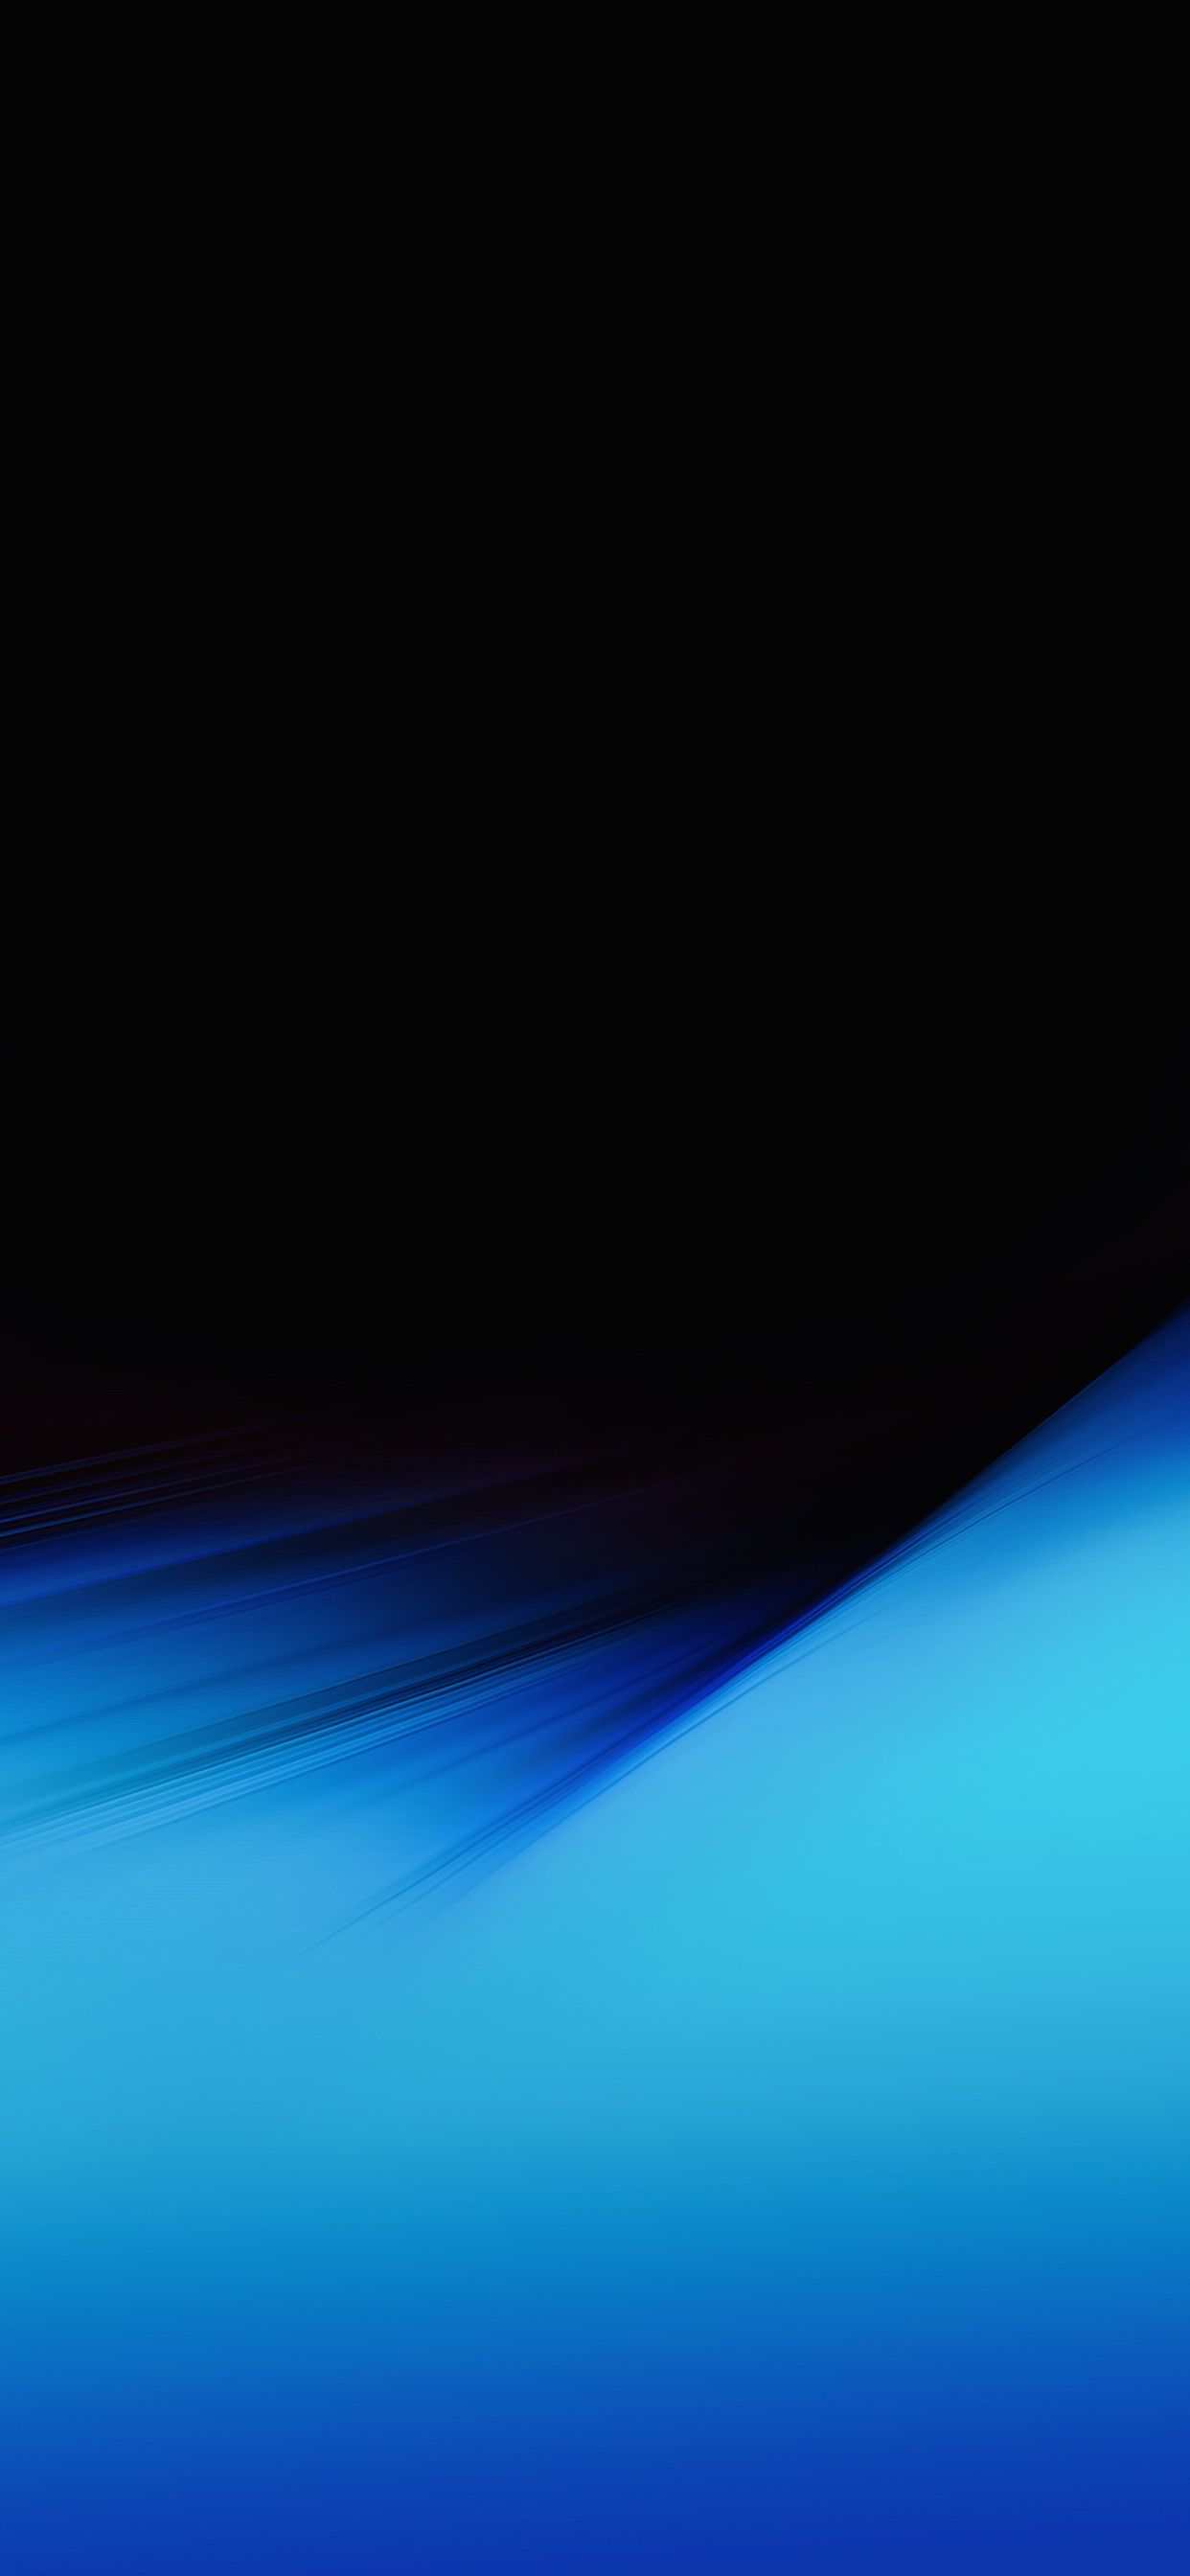 By Ar72014 On Twitter Samsung Wallpaper Android Wallpaper